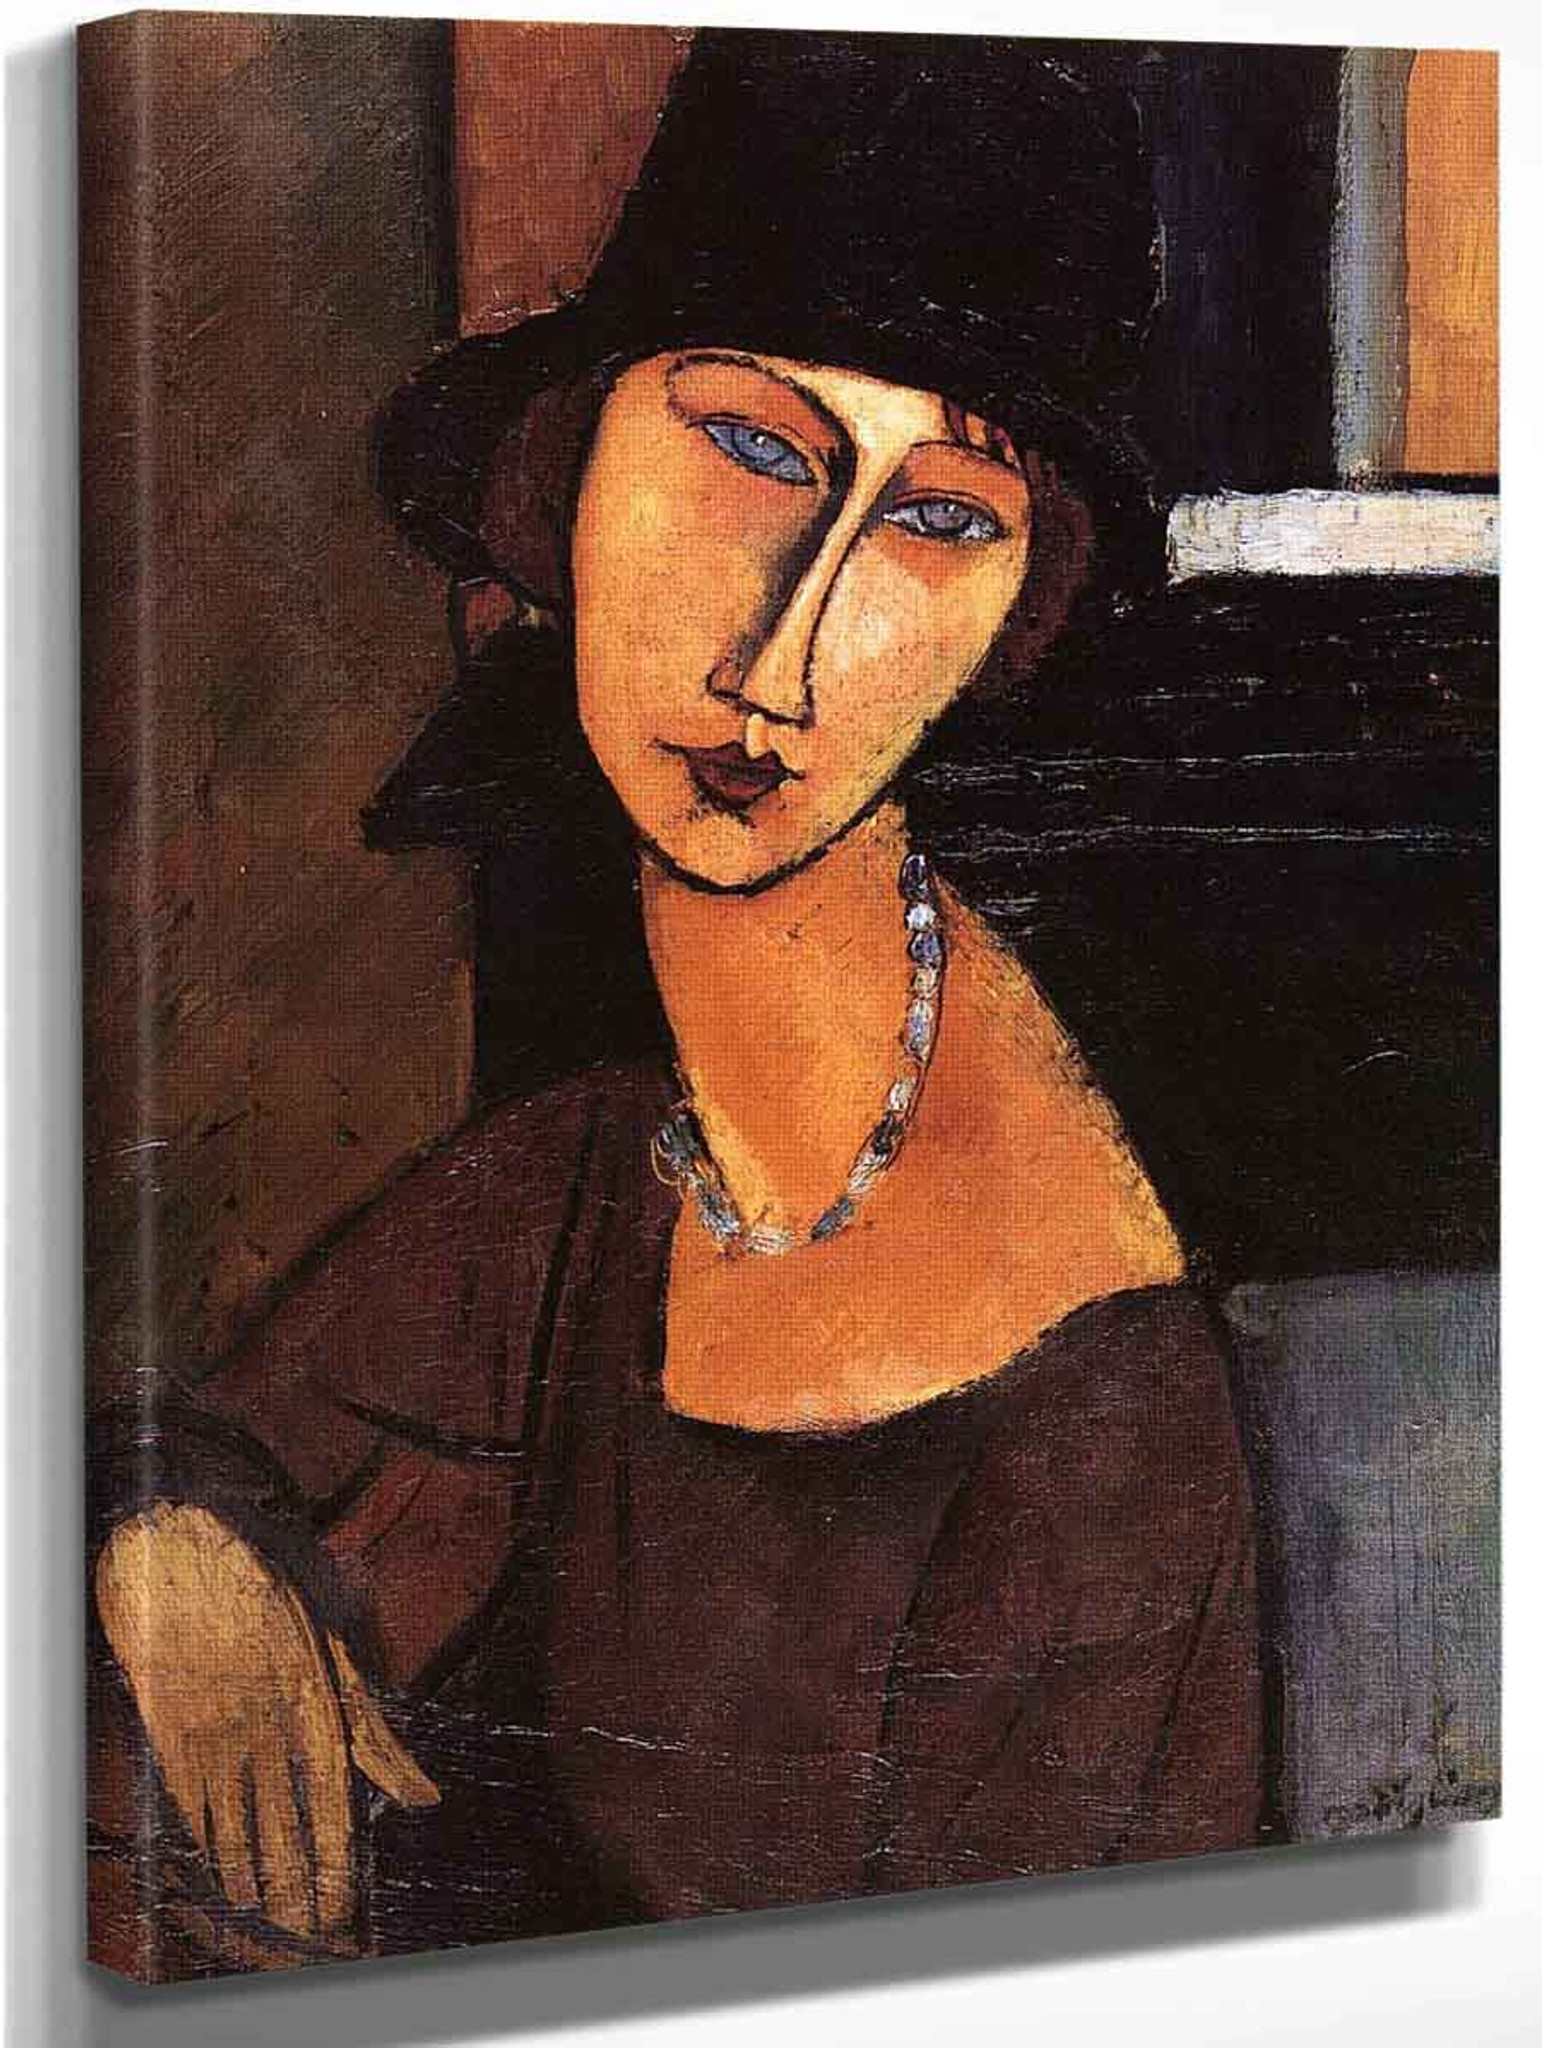 Jeanne Hebuterne   by Amedeo Modigliani   Giclee Canvas Print Repro